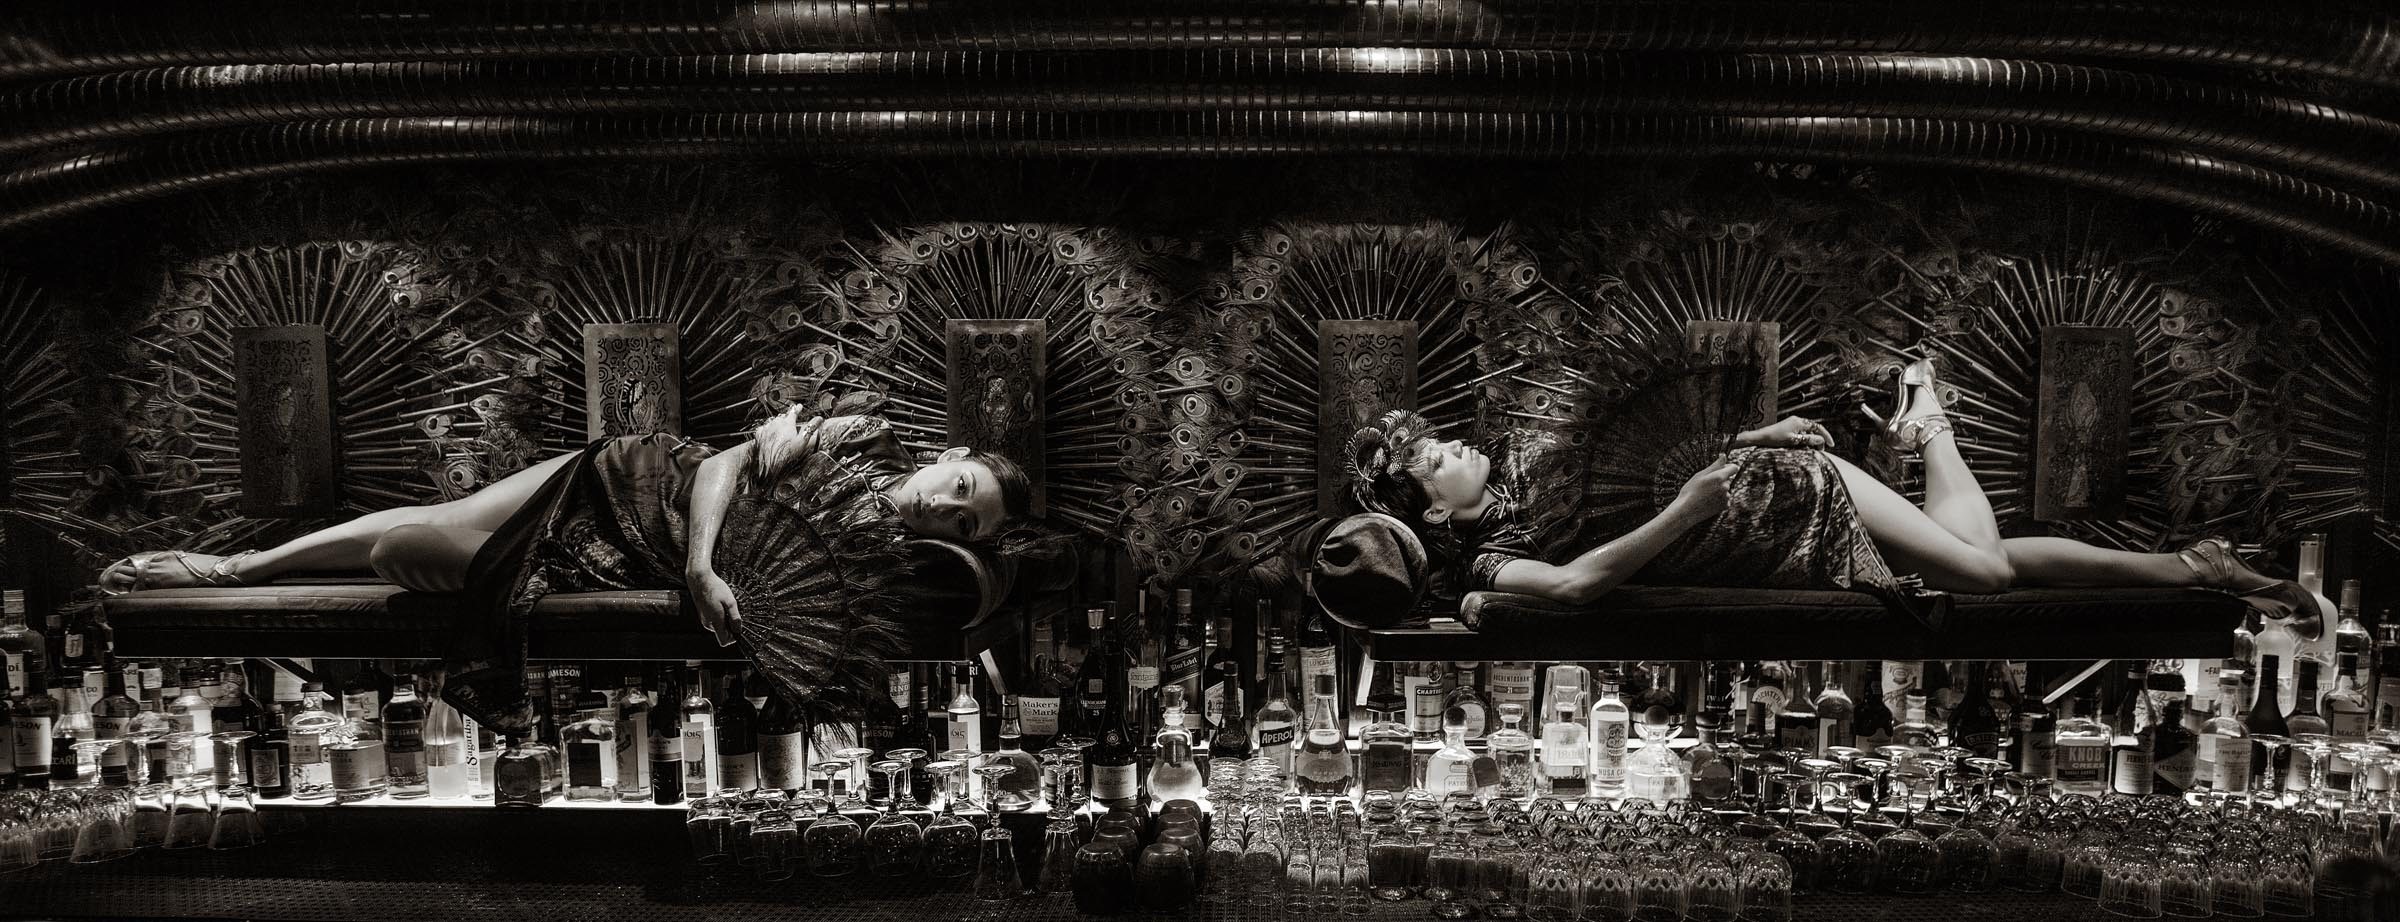 Performers lay on opium beds mounted to the wall above the bar at Ophelia.